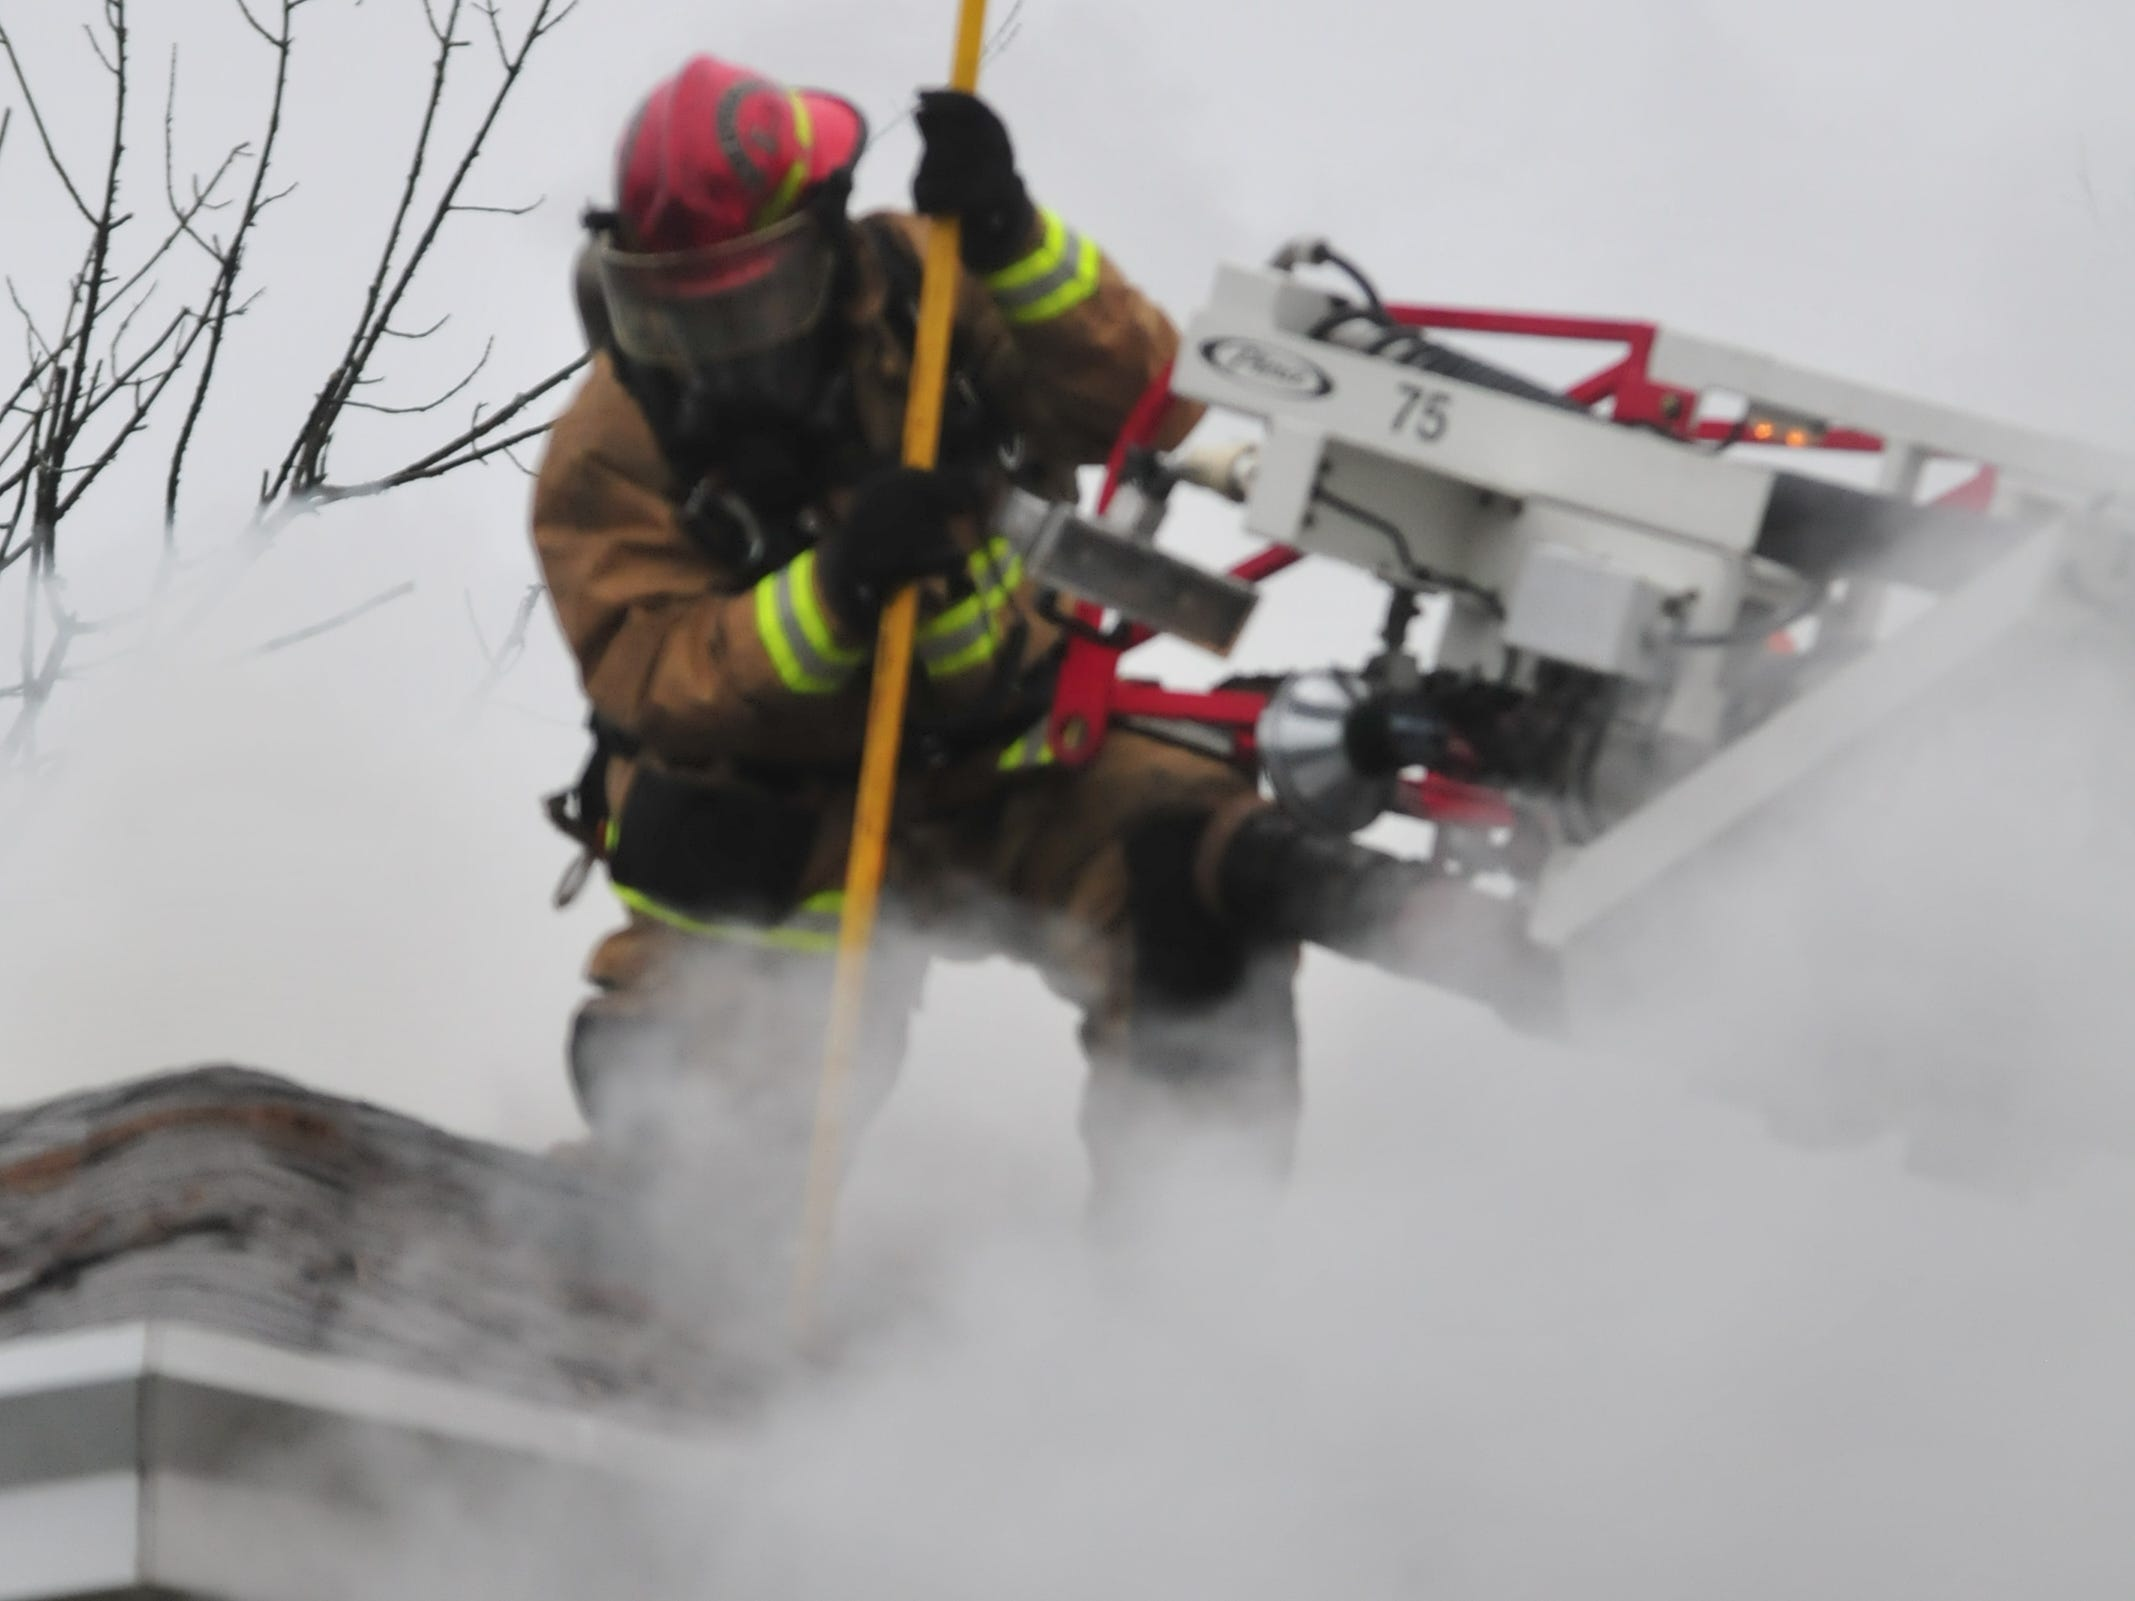 Richmond Fire Department personnel worked from the roof Wednesday during a fire at 112 N. 18th St.